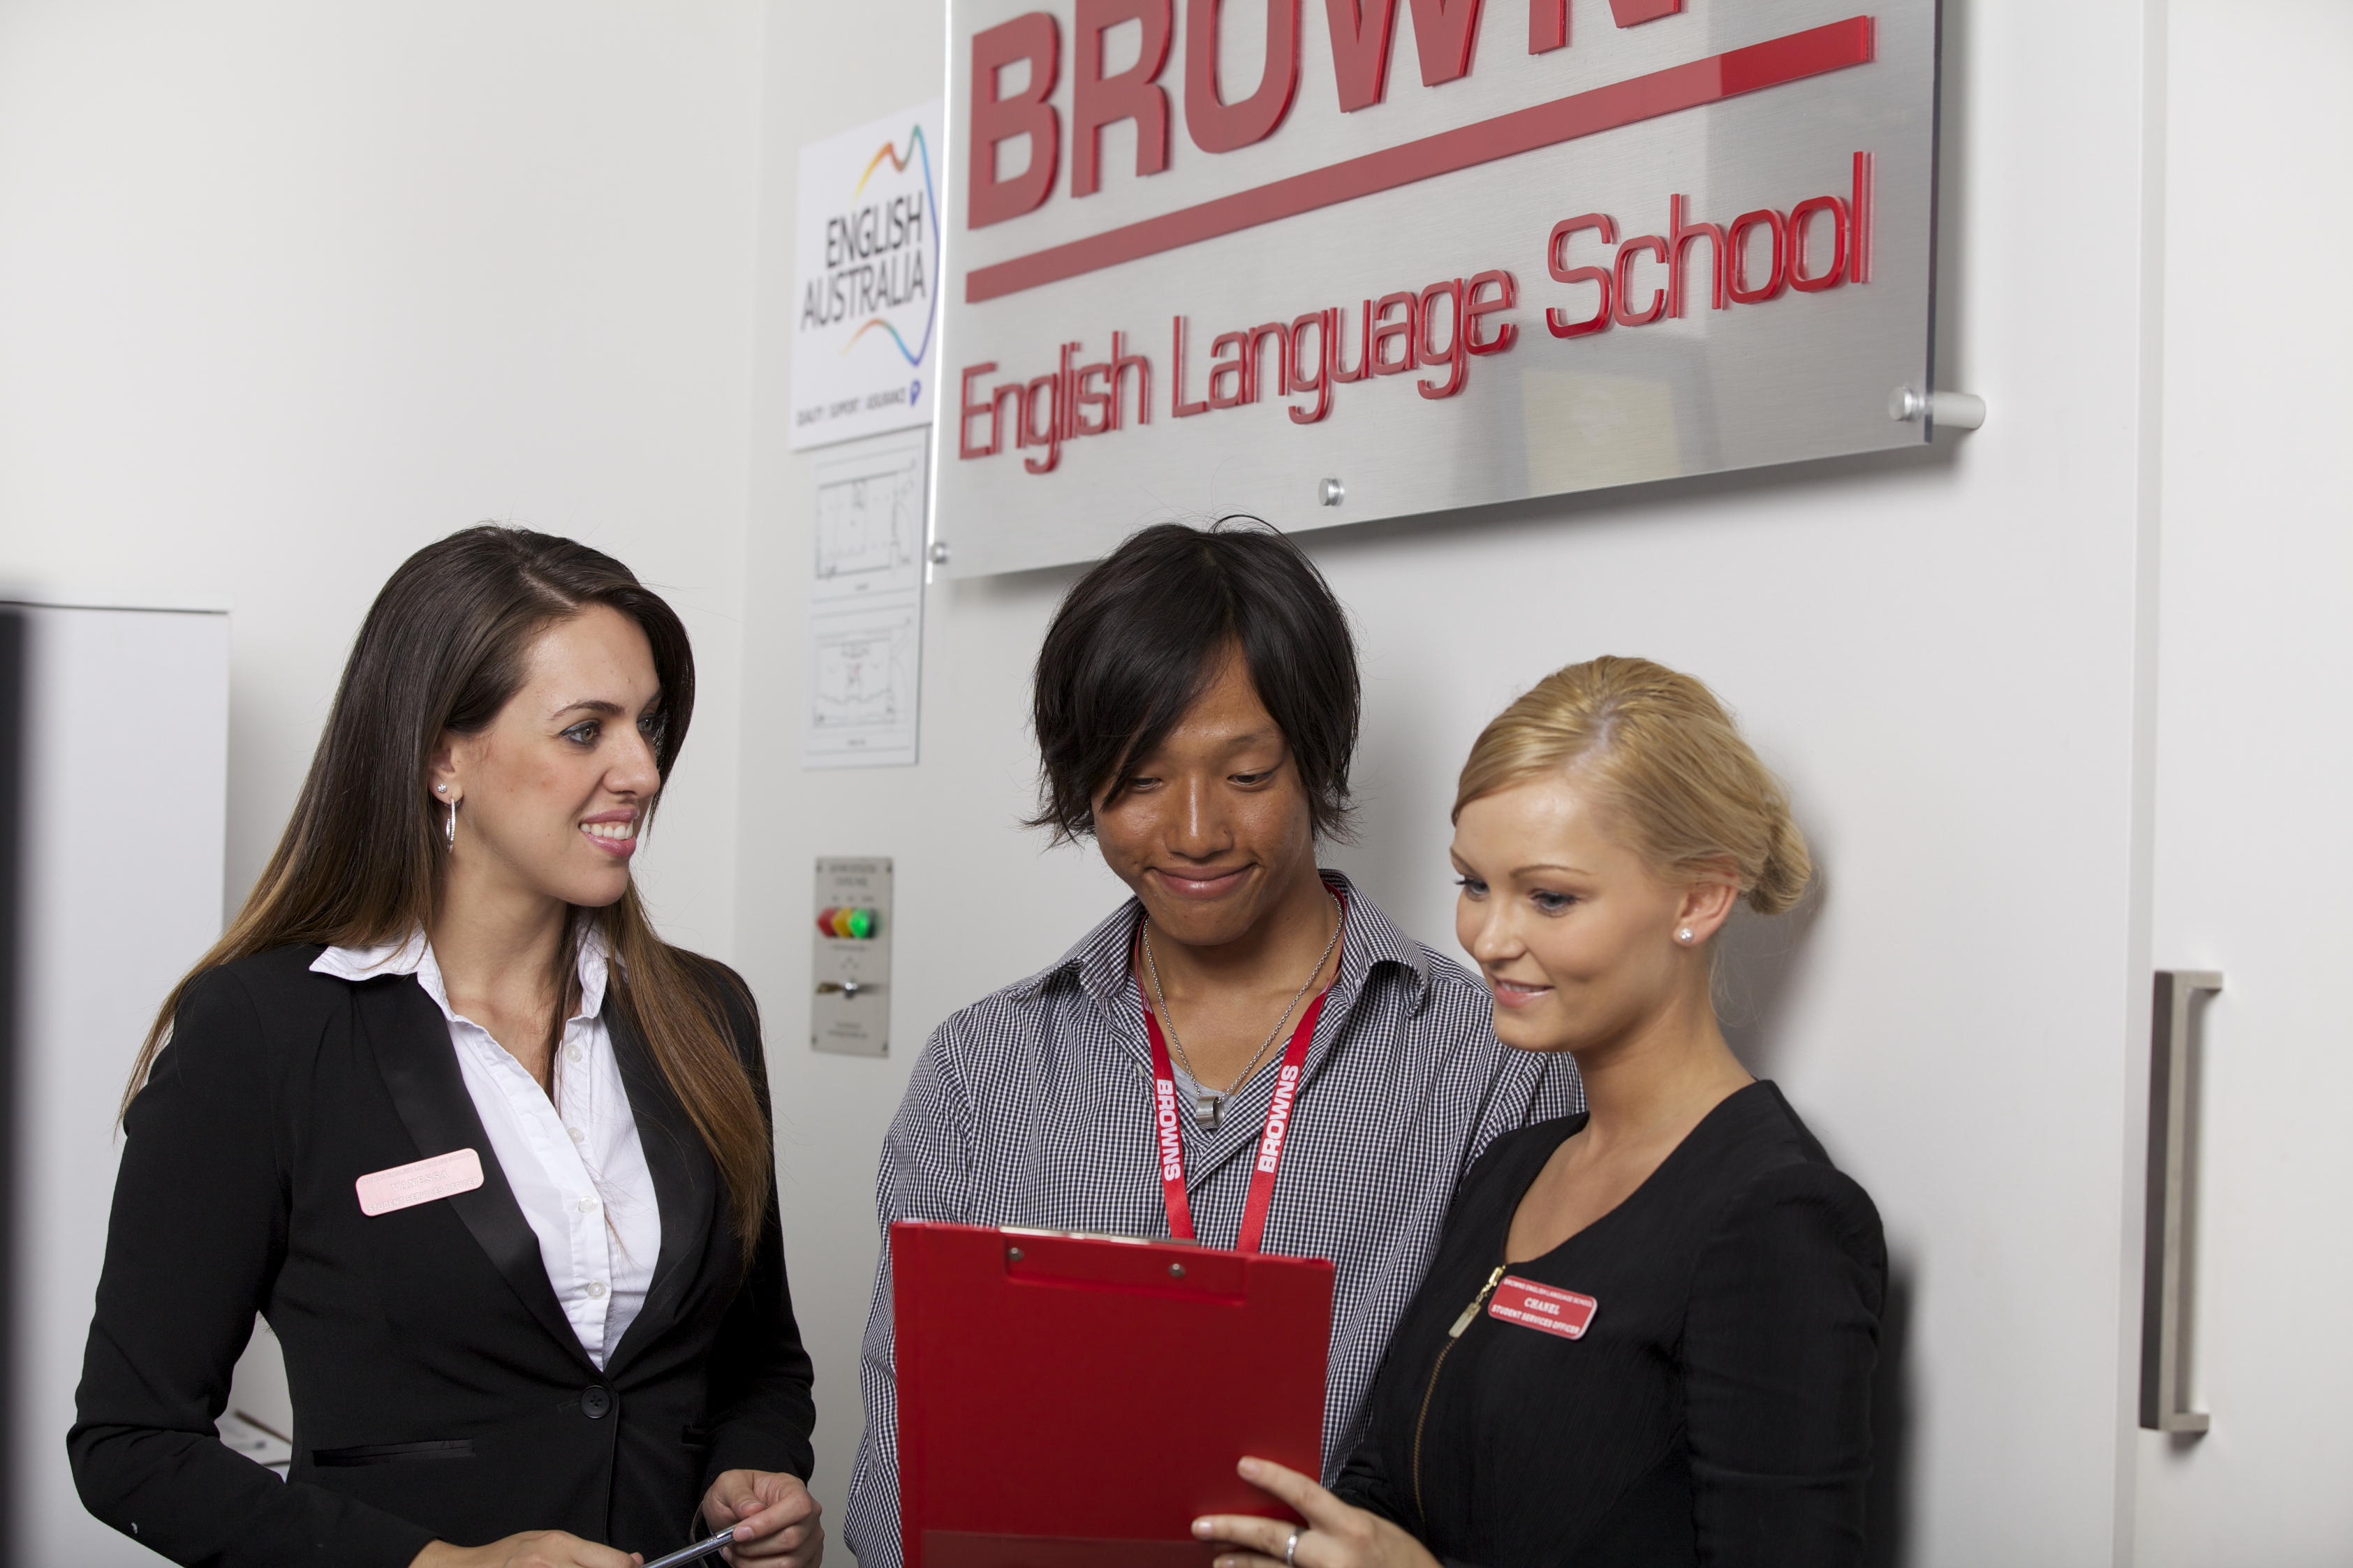 BROWNS English Language School Gold Coast Campus